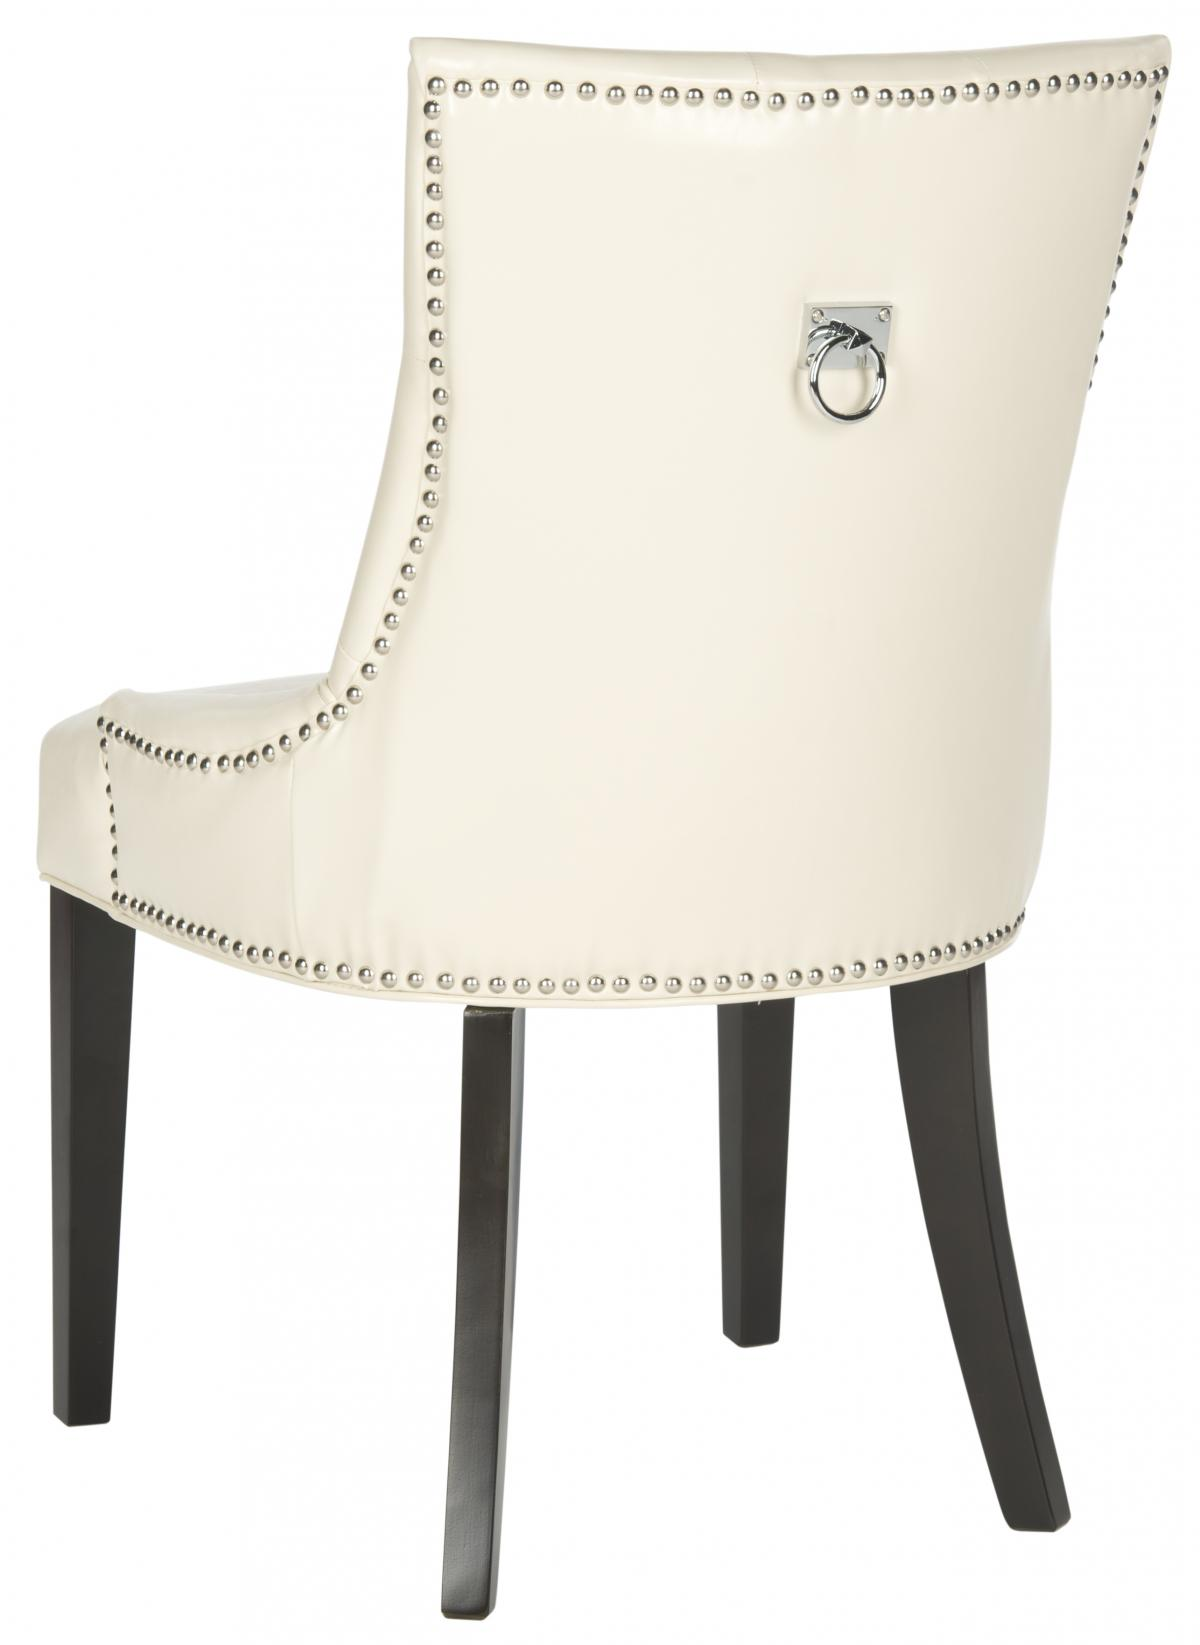 safavieh dining chairs bistro set with swivel mcr4716b harlow ring chair off white 891 00